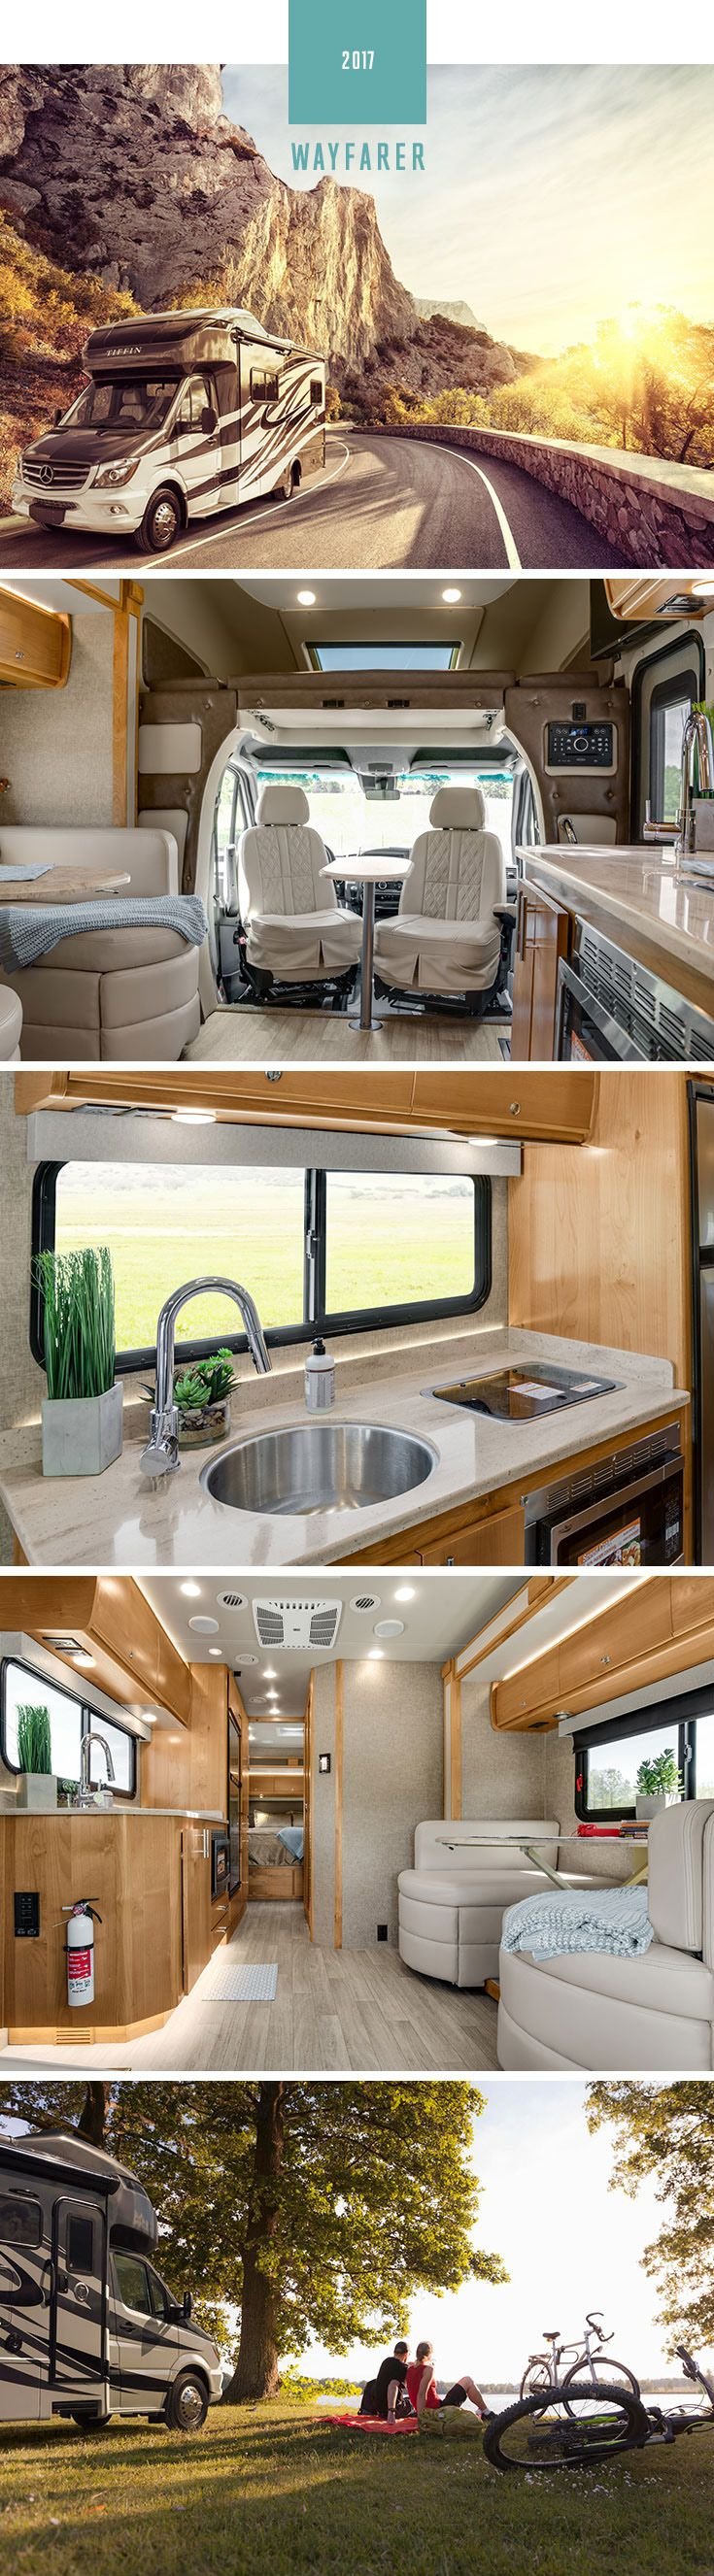 Fun to drive and ready when you are. The 2017 Tiffin Wayfarer is a new Class C from Tiffin Motorhomes. Jump in one today.